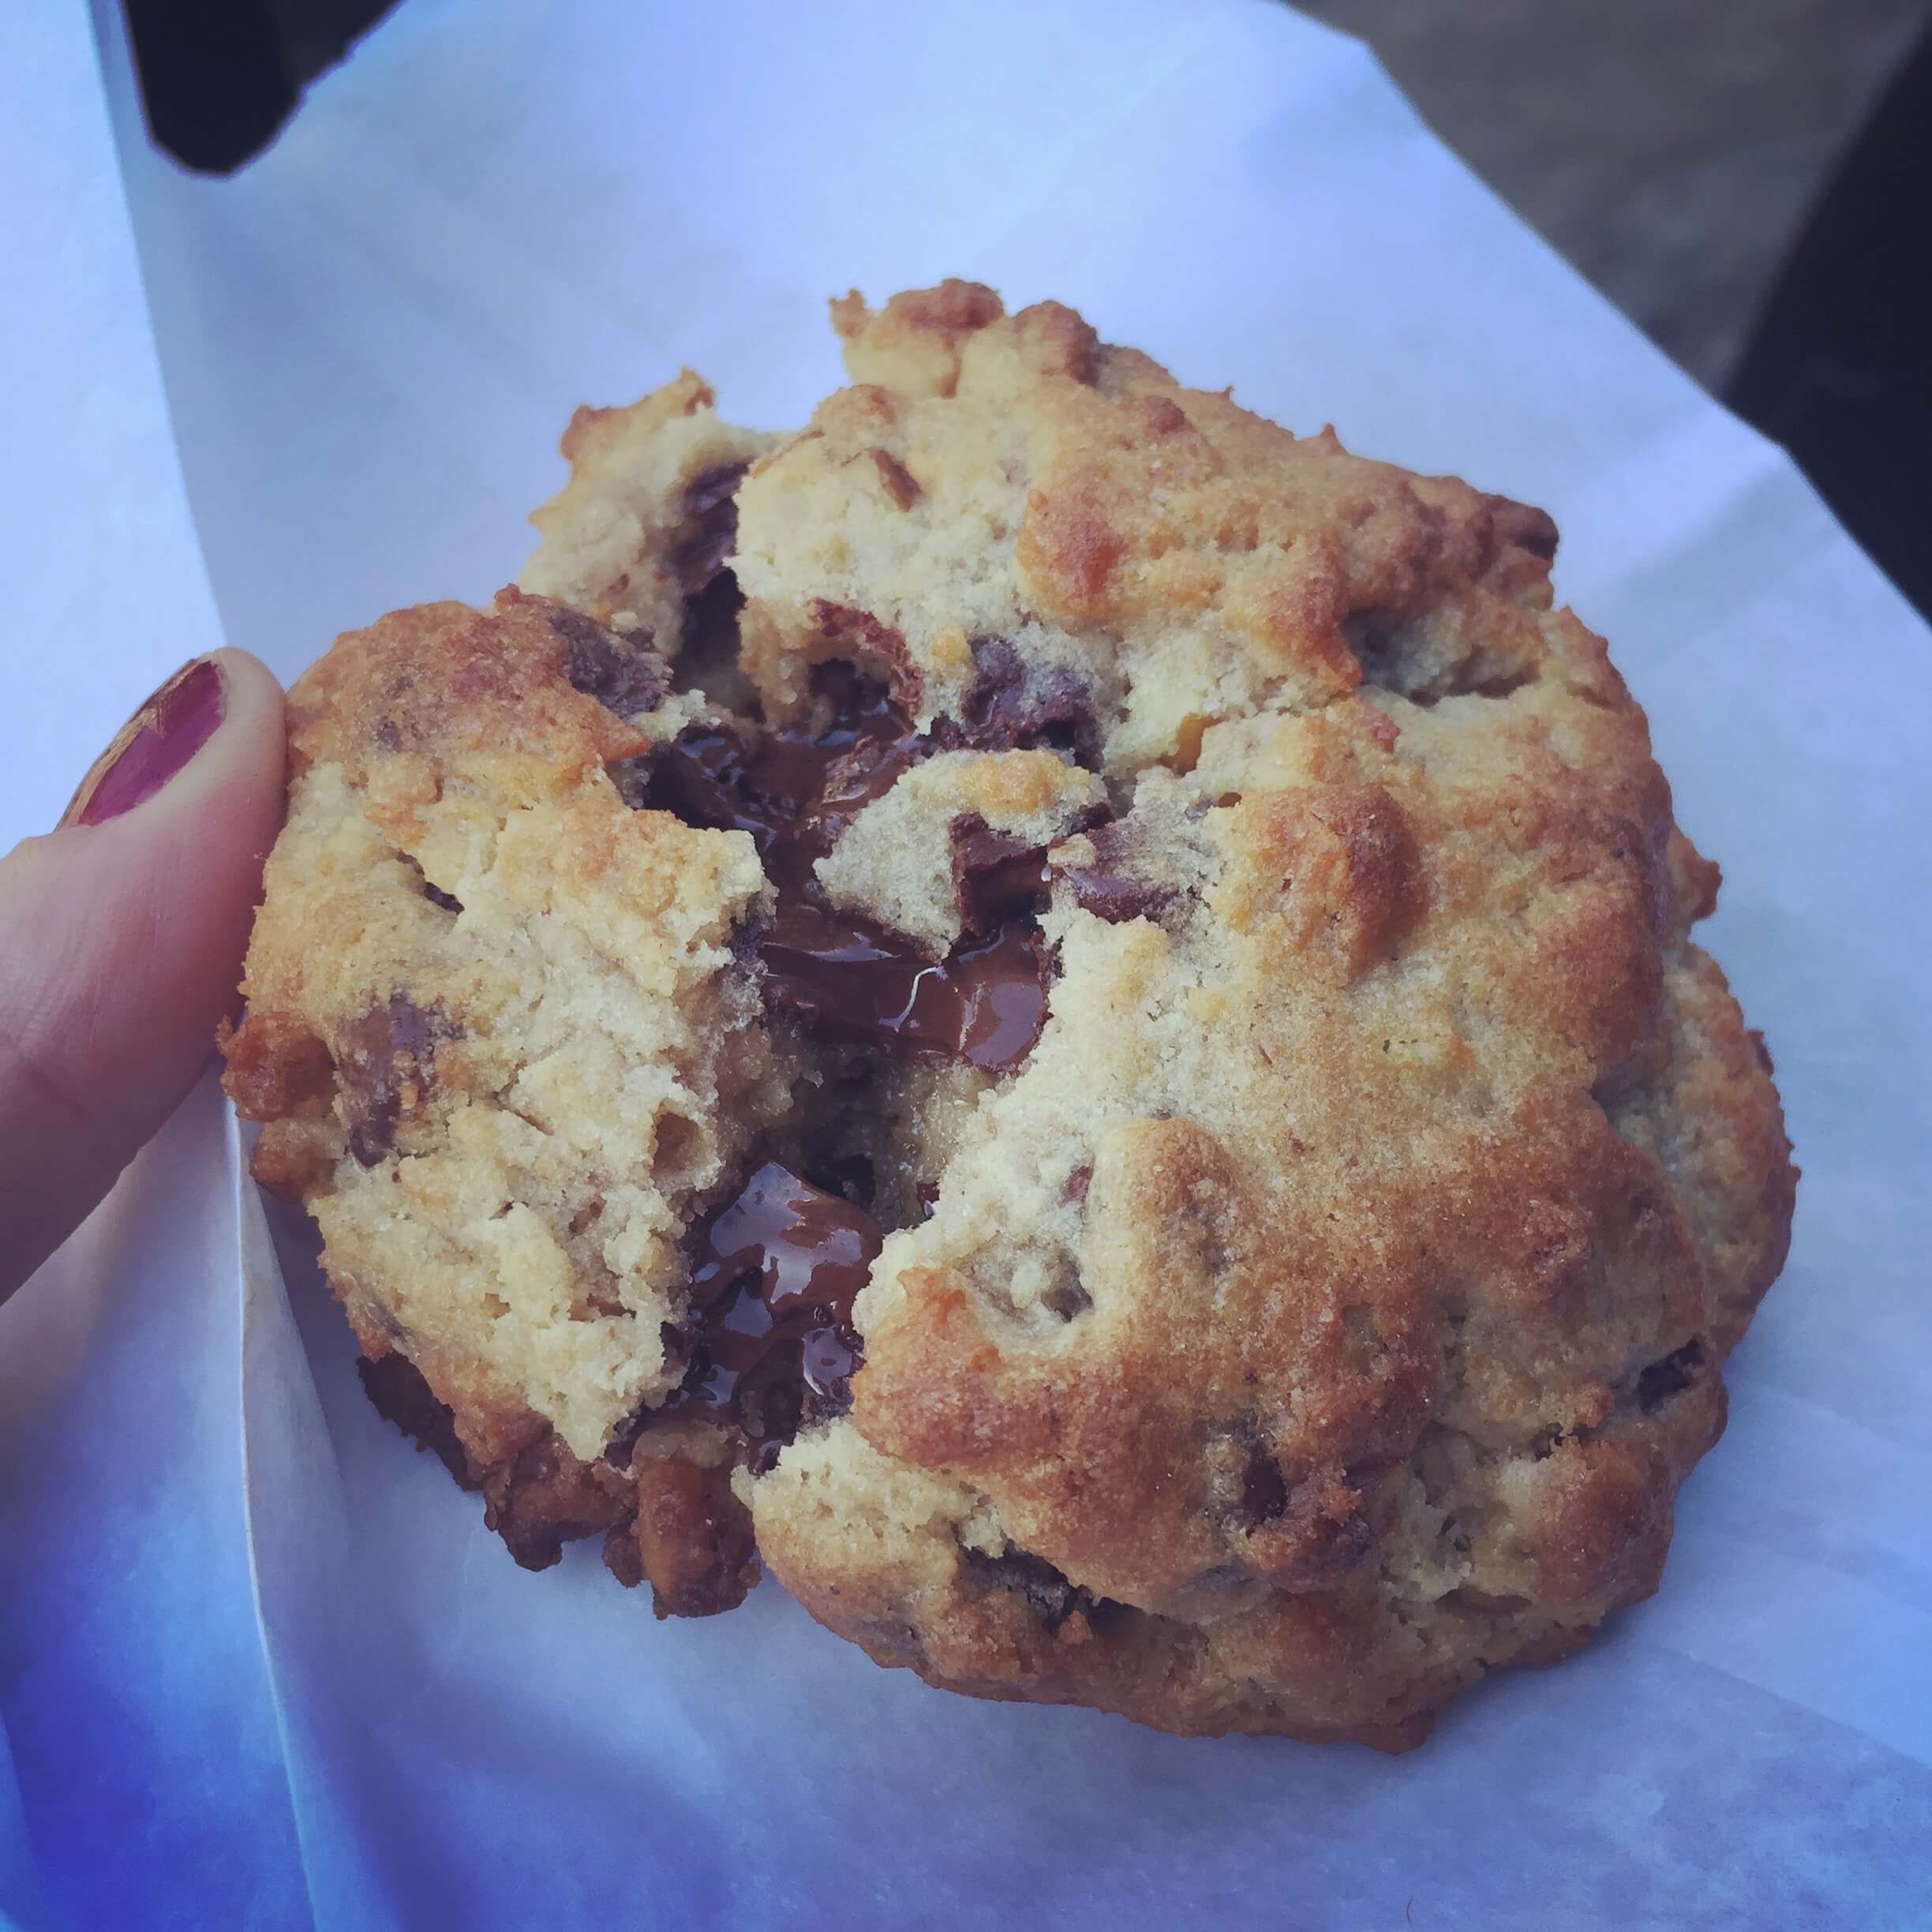 chocolate chunk walnut cookie on a white bag from Levain Bakery in new york